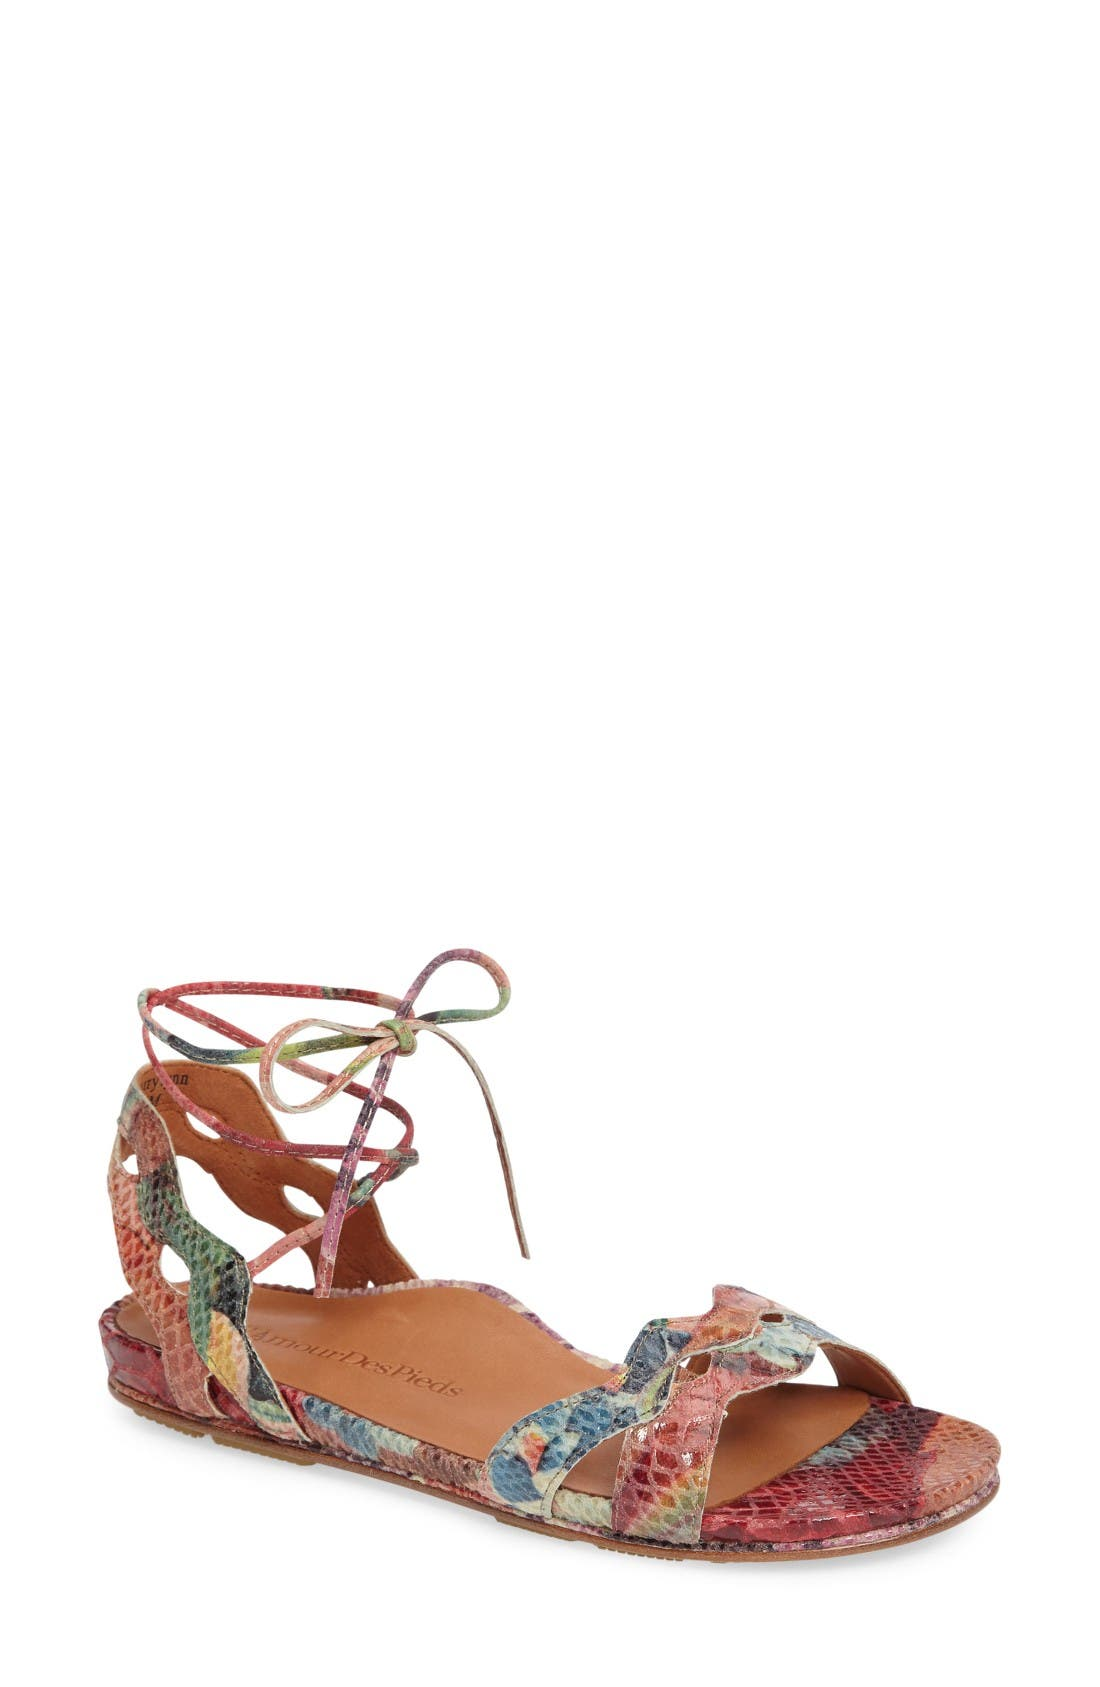 Darrylynn Wraparound Lace-Up Sandal,                         Main,                         color, Bright Multi Printed Leather